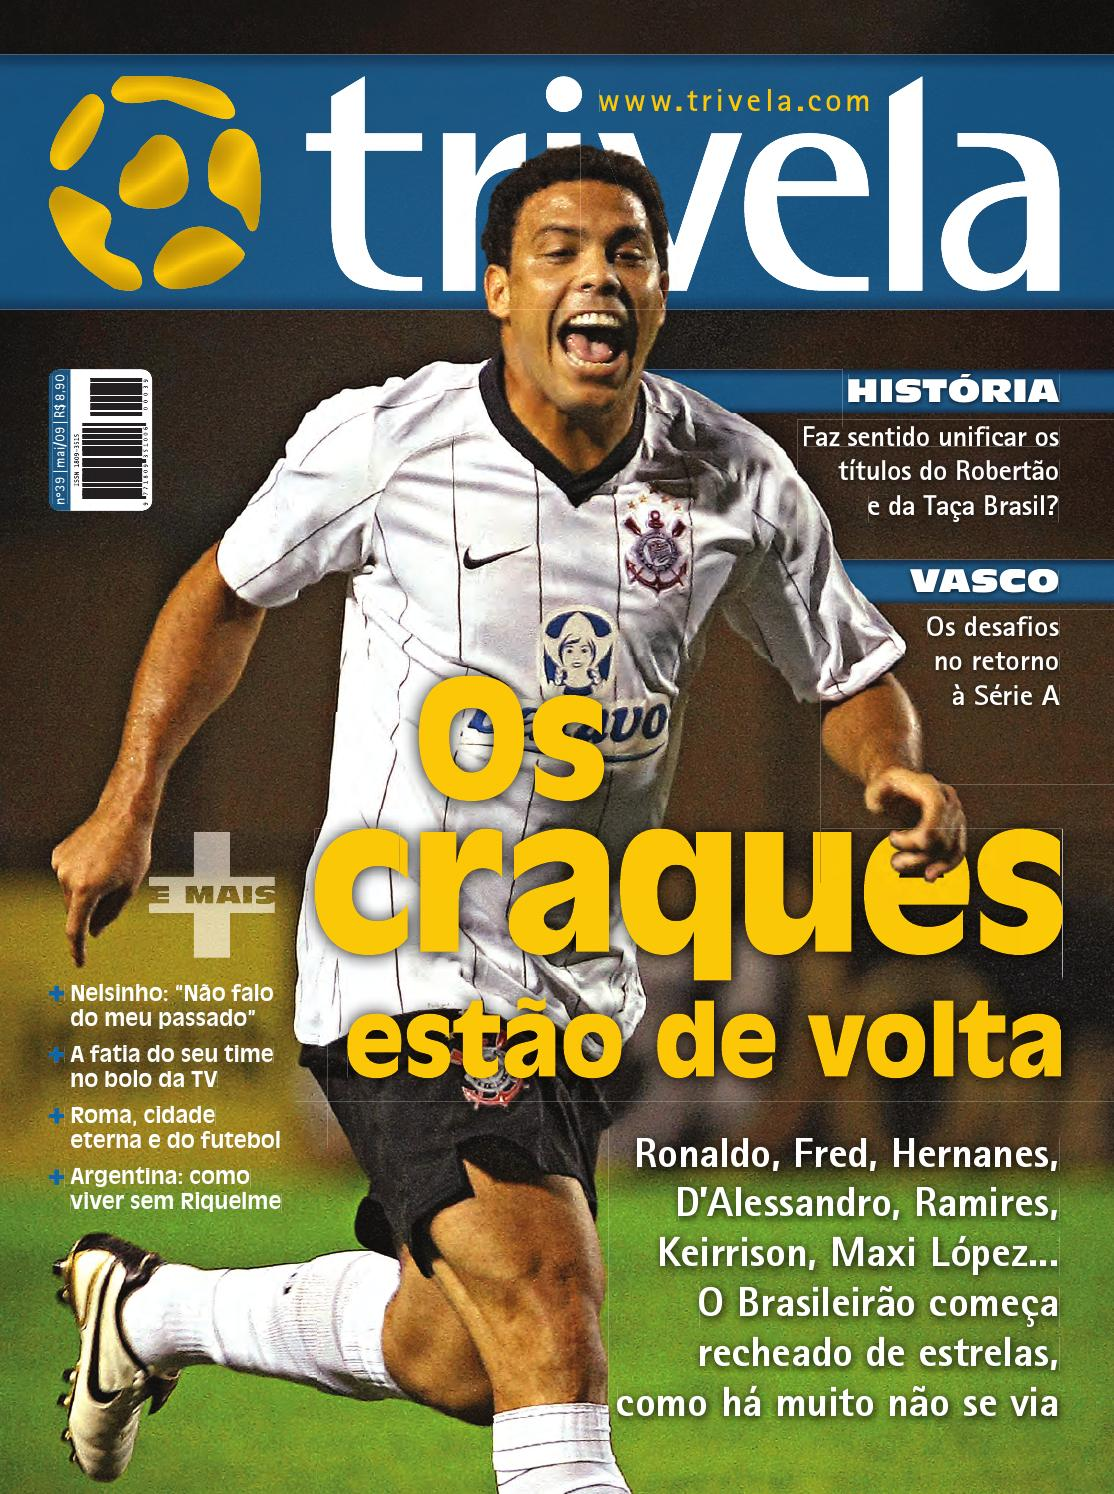 Trivela 39 (mai 09) by °F451 - issuu 7172306cf82fc